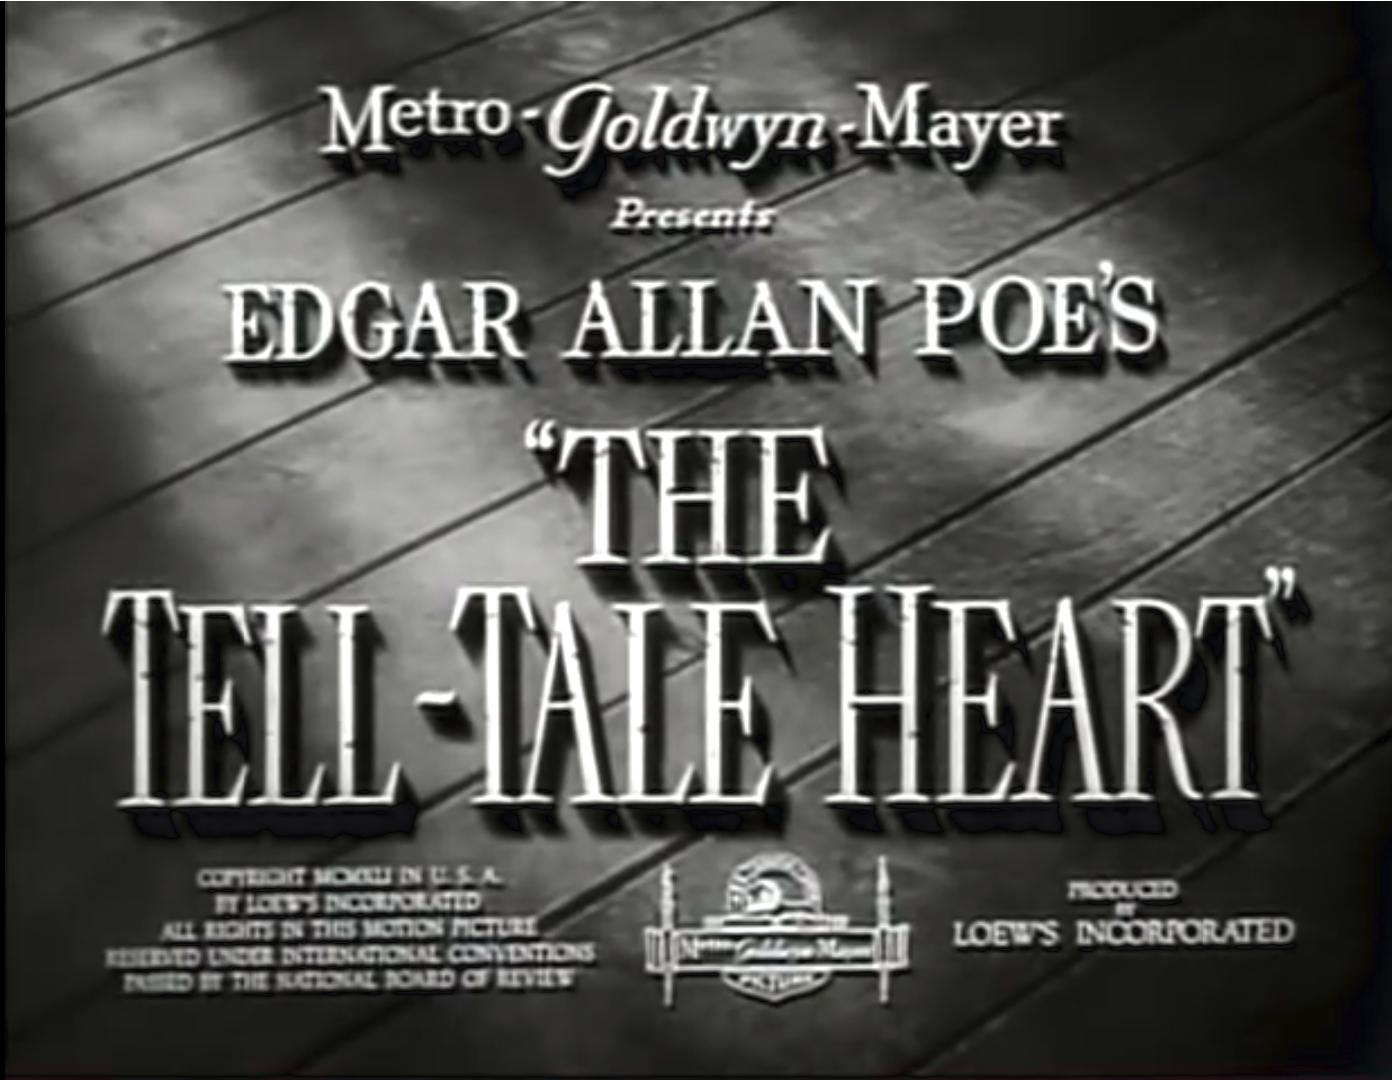 The Tell-Tale Heart (1941)